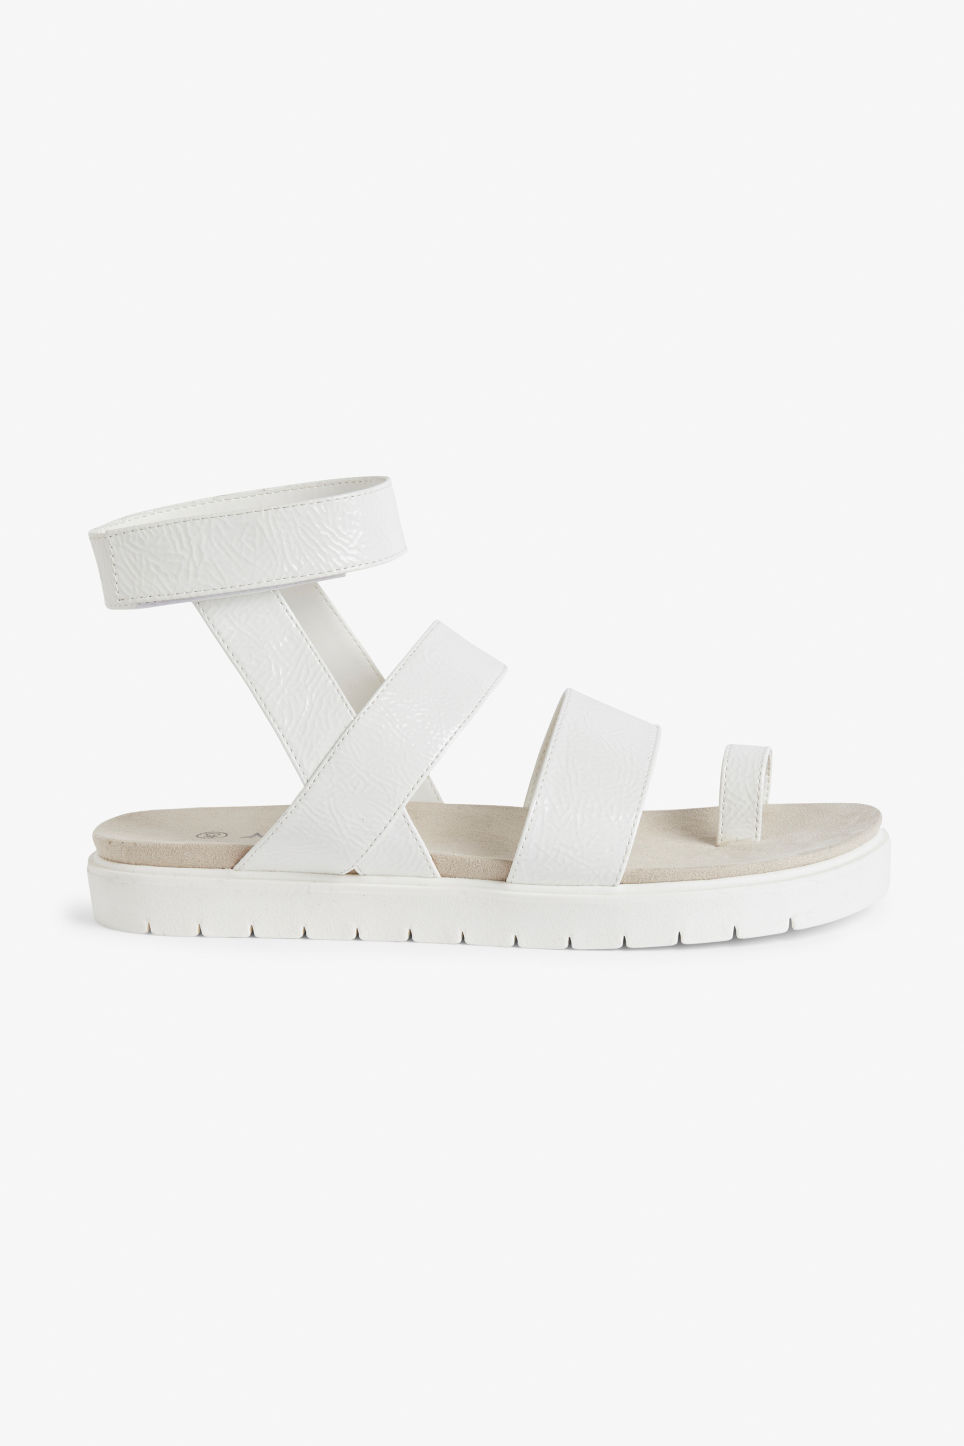 Detailed image of Monki faux leather sandals in white